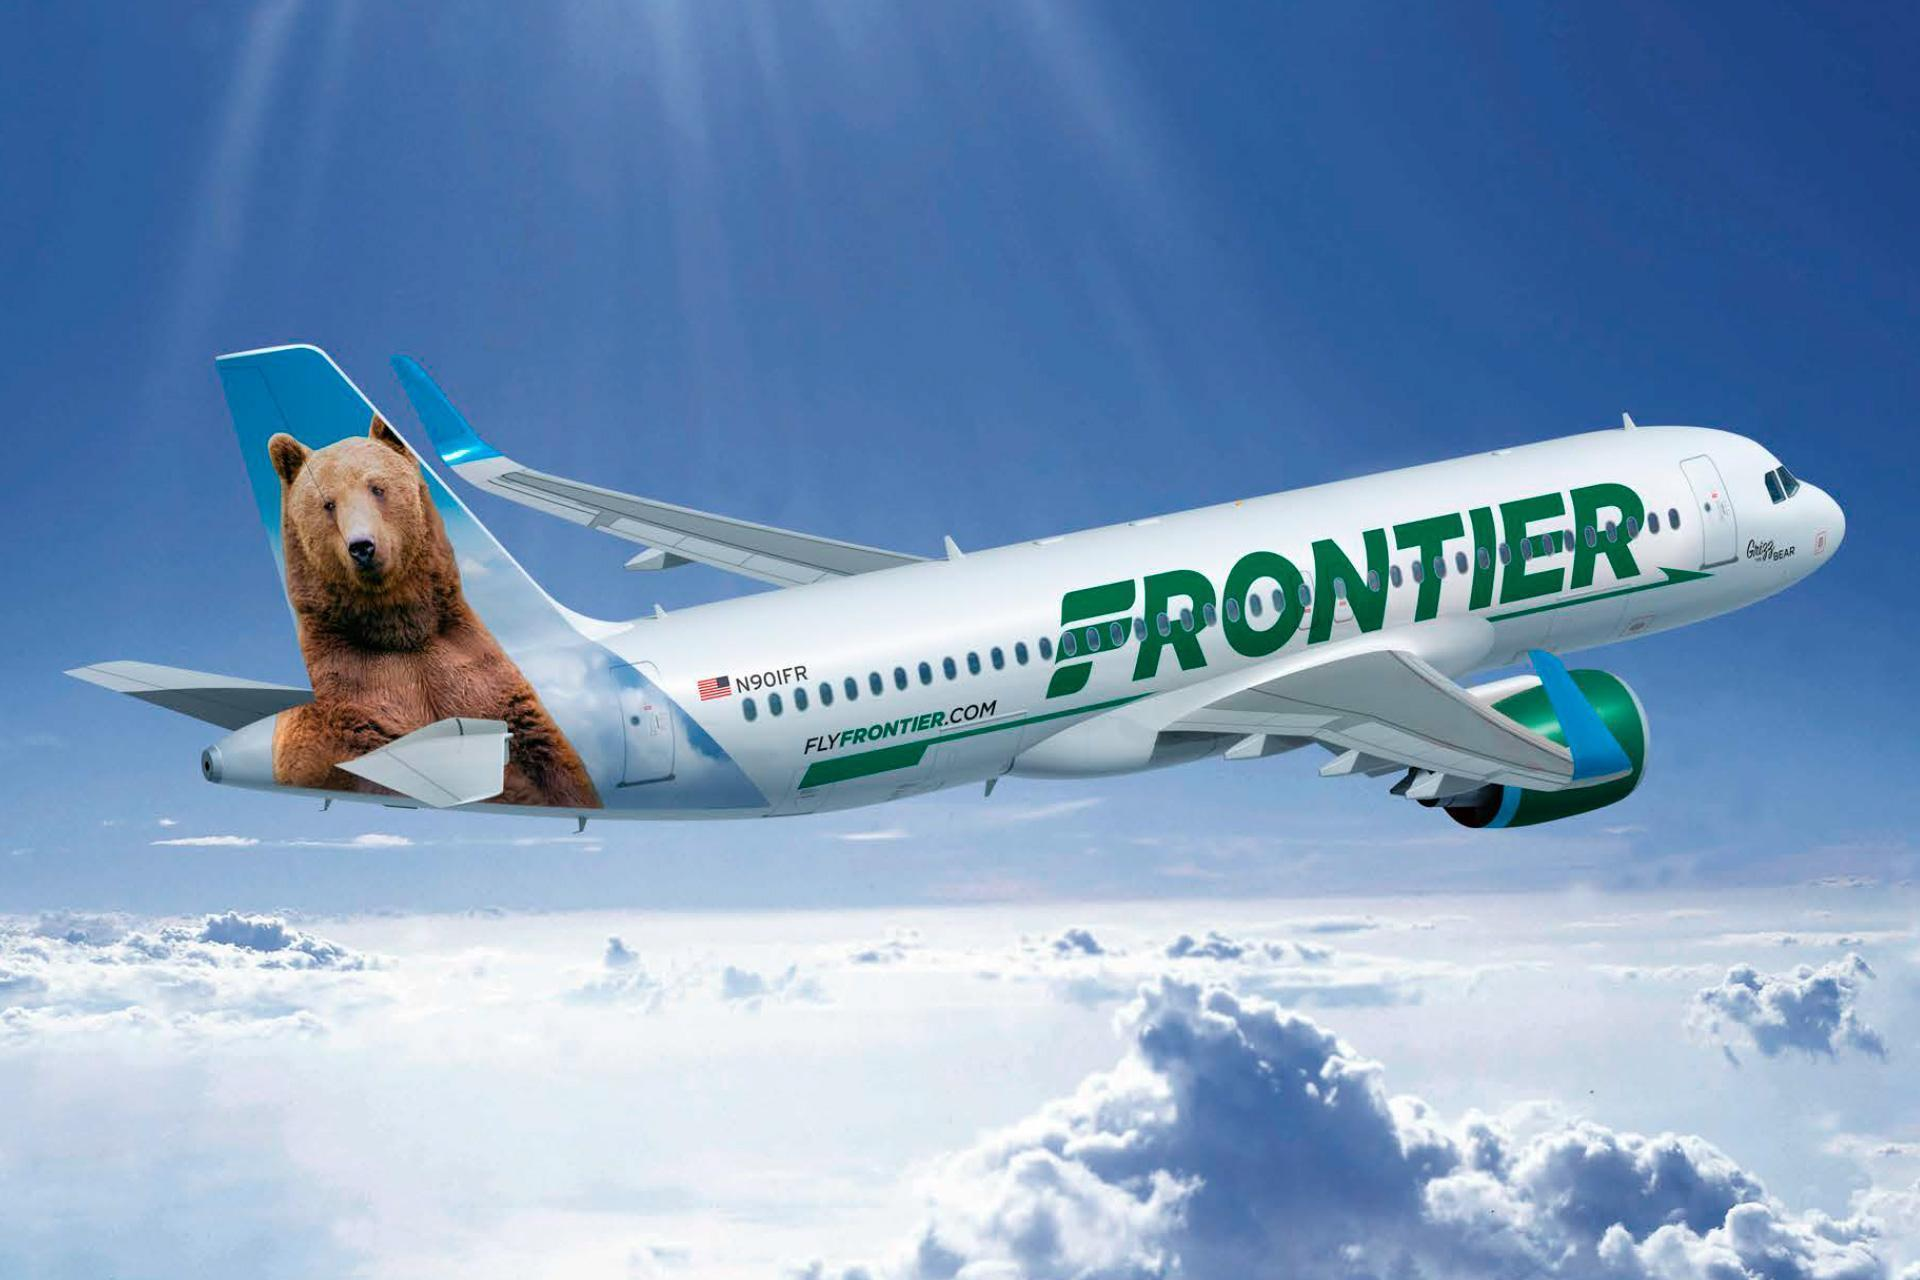 frontierairlines phase1 Establish an official codeshare agreement contract with frontier airlines' and spirit airlines' existing legal teams phase phase 1 senior vp.